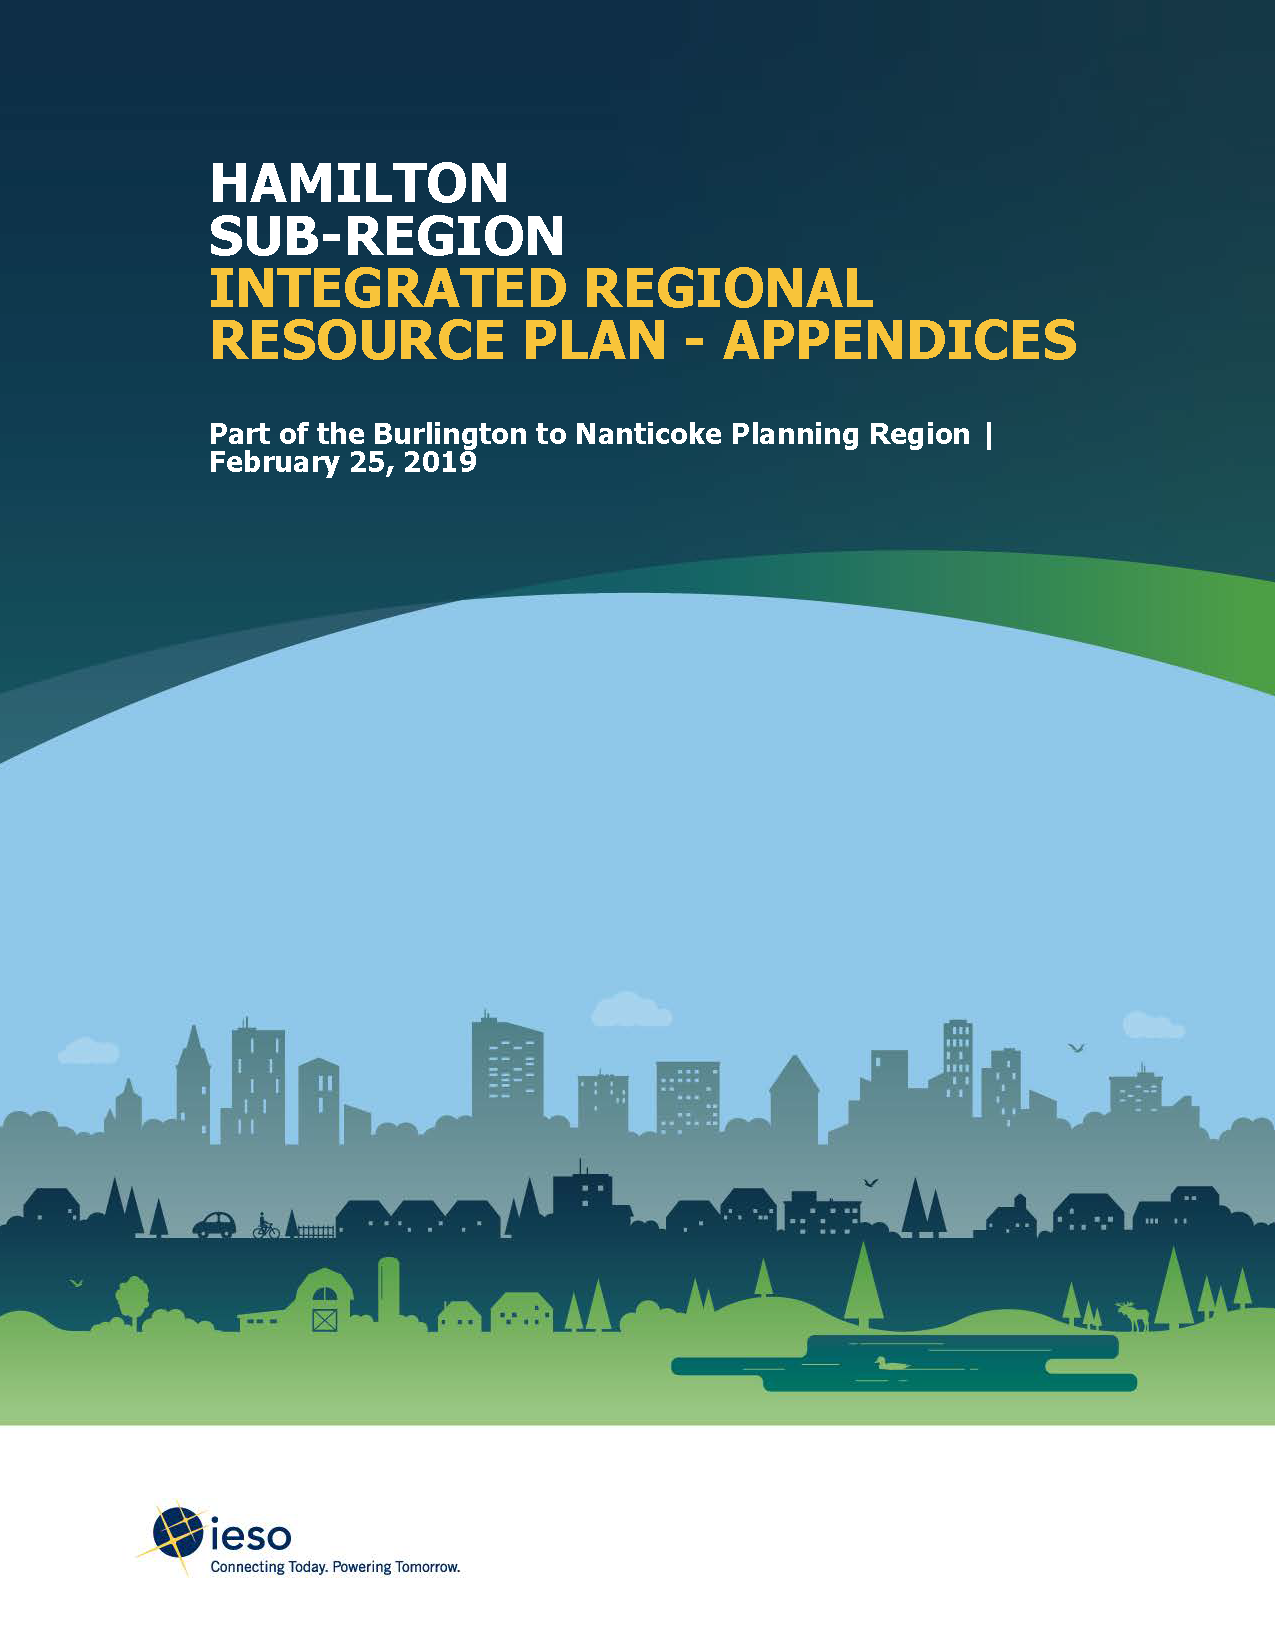 Hamilton Sub-Region Integrated Regional Resource Plan Appendices Cover